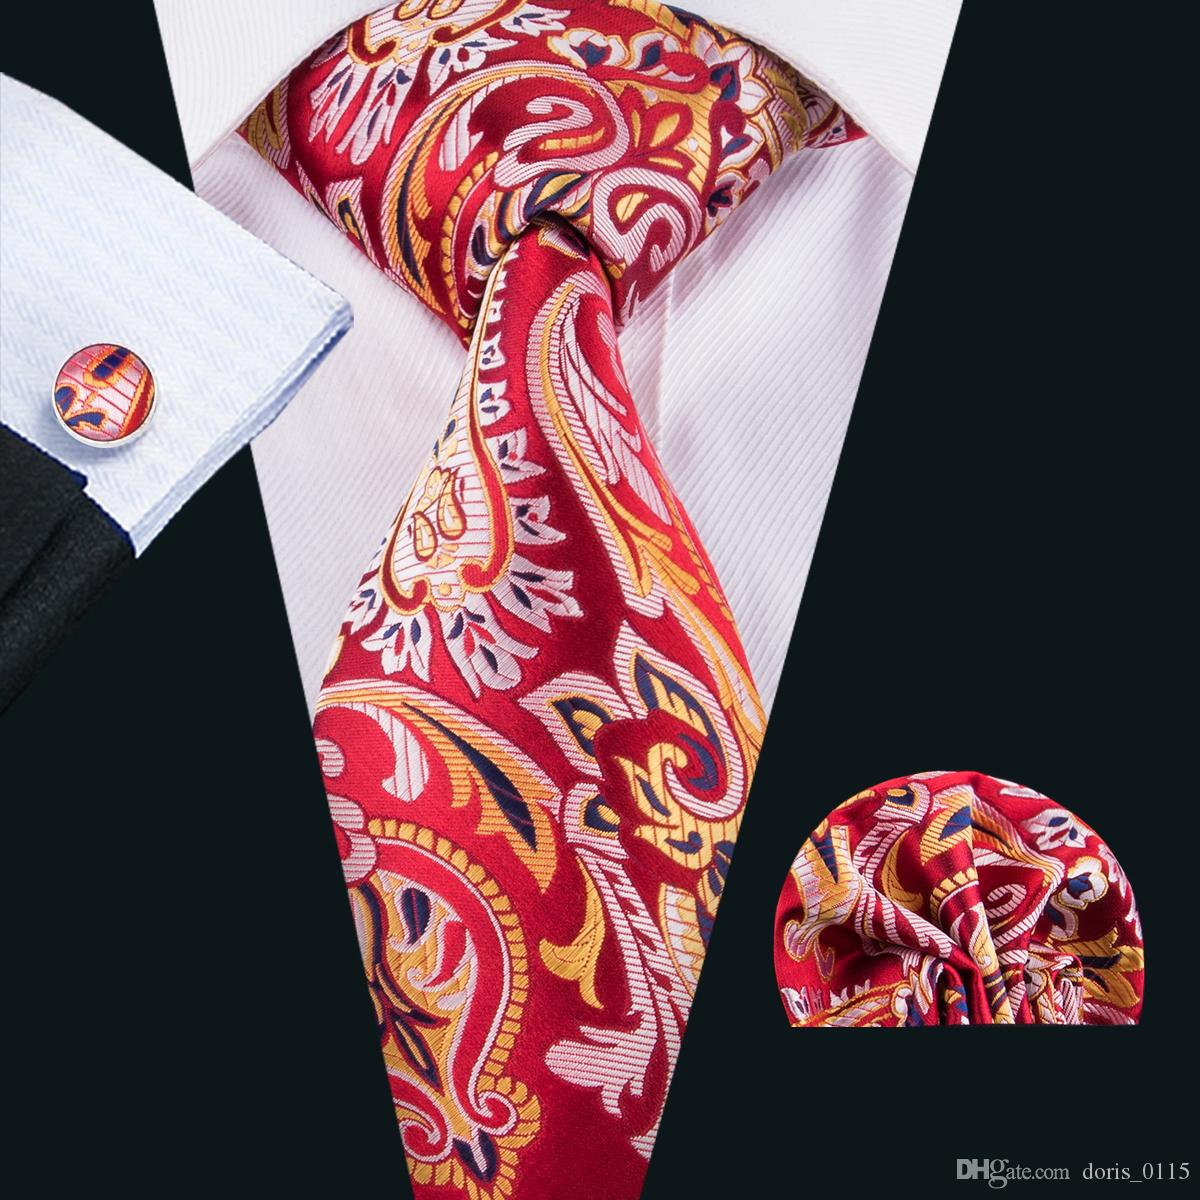 455c2ce24f 2019 Paisley Red Tie Dropship Mens Tie Handkerchief Cufflinks Set Red And  Gold Necktie For Men Wedding Part BusinessN 1587 From Doris_0115, $4.86 |  DHgate.